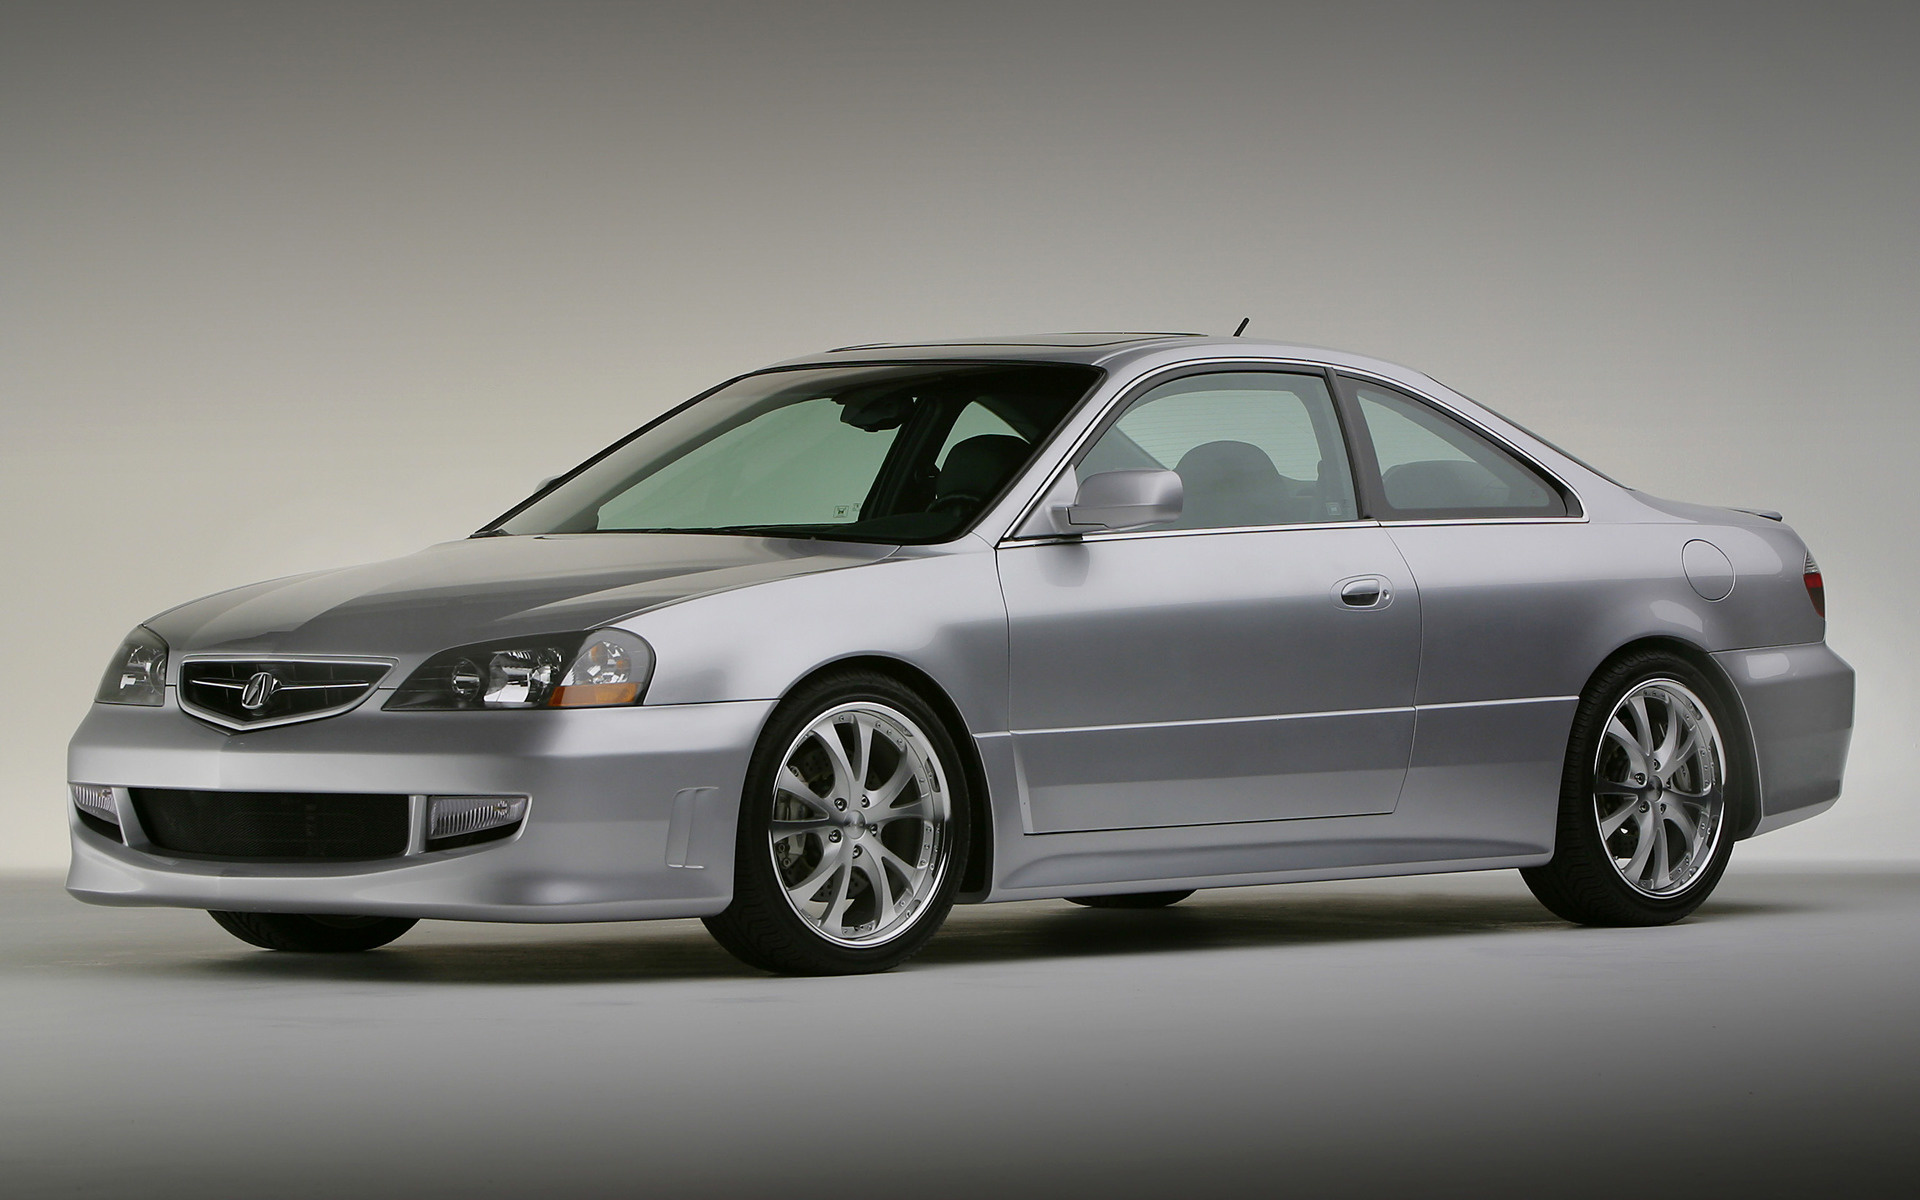 2002 acura cl type s concept wallpapers and hd images car pixel. Black Bedroom Furniture Sets. Home Design Ideas